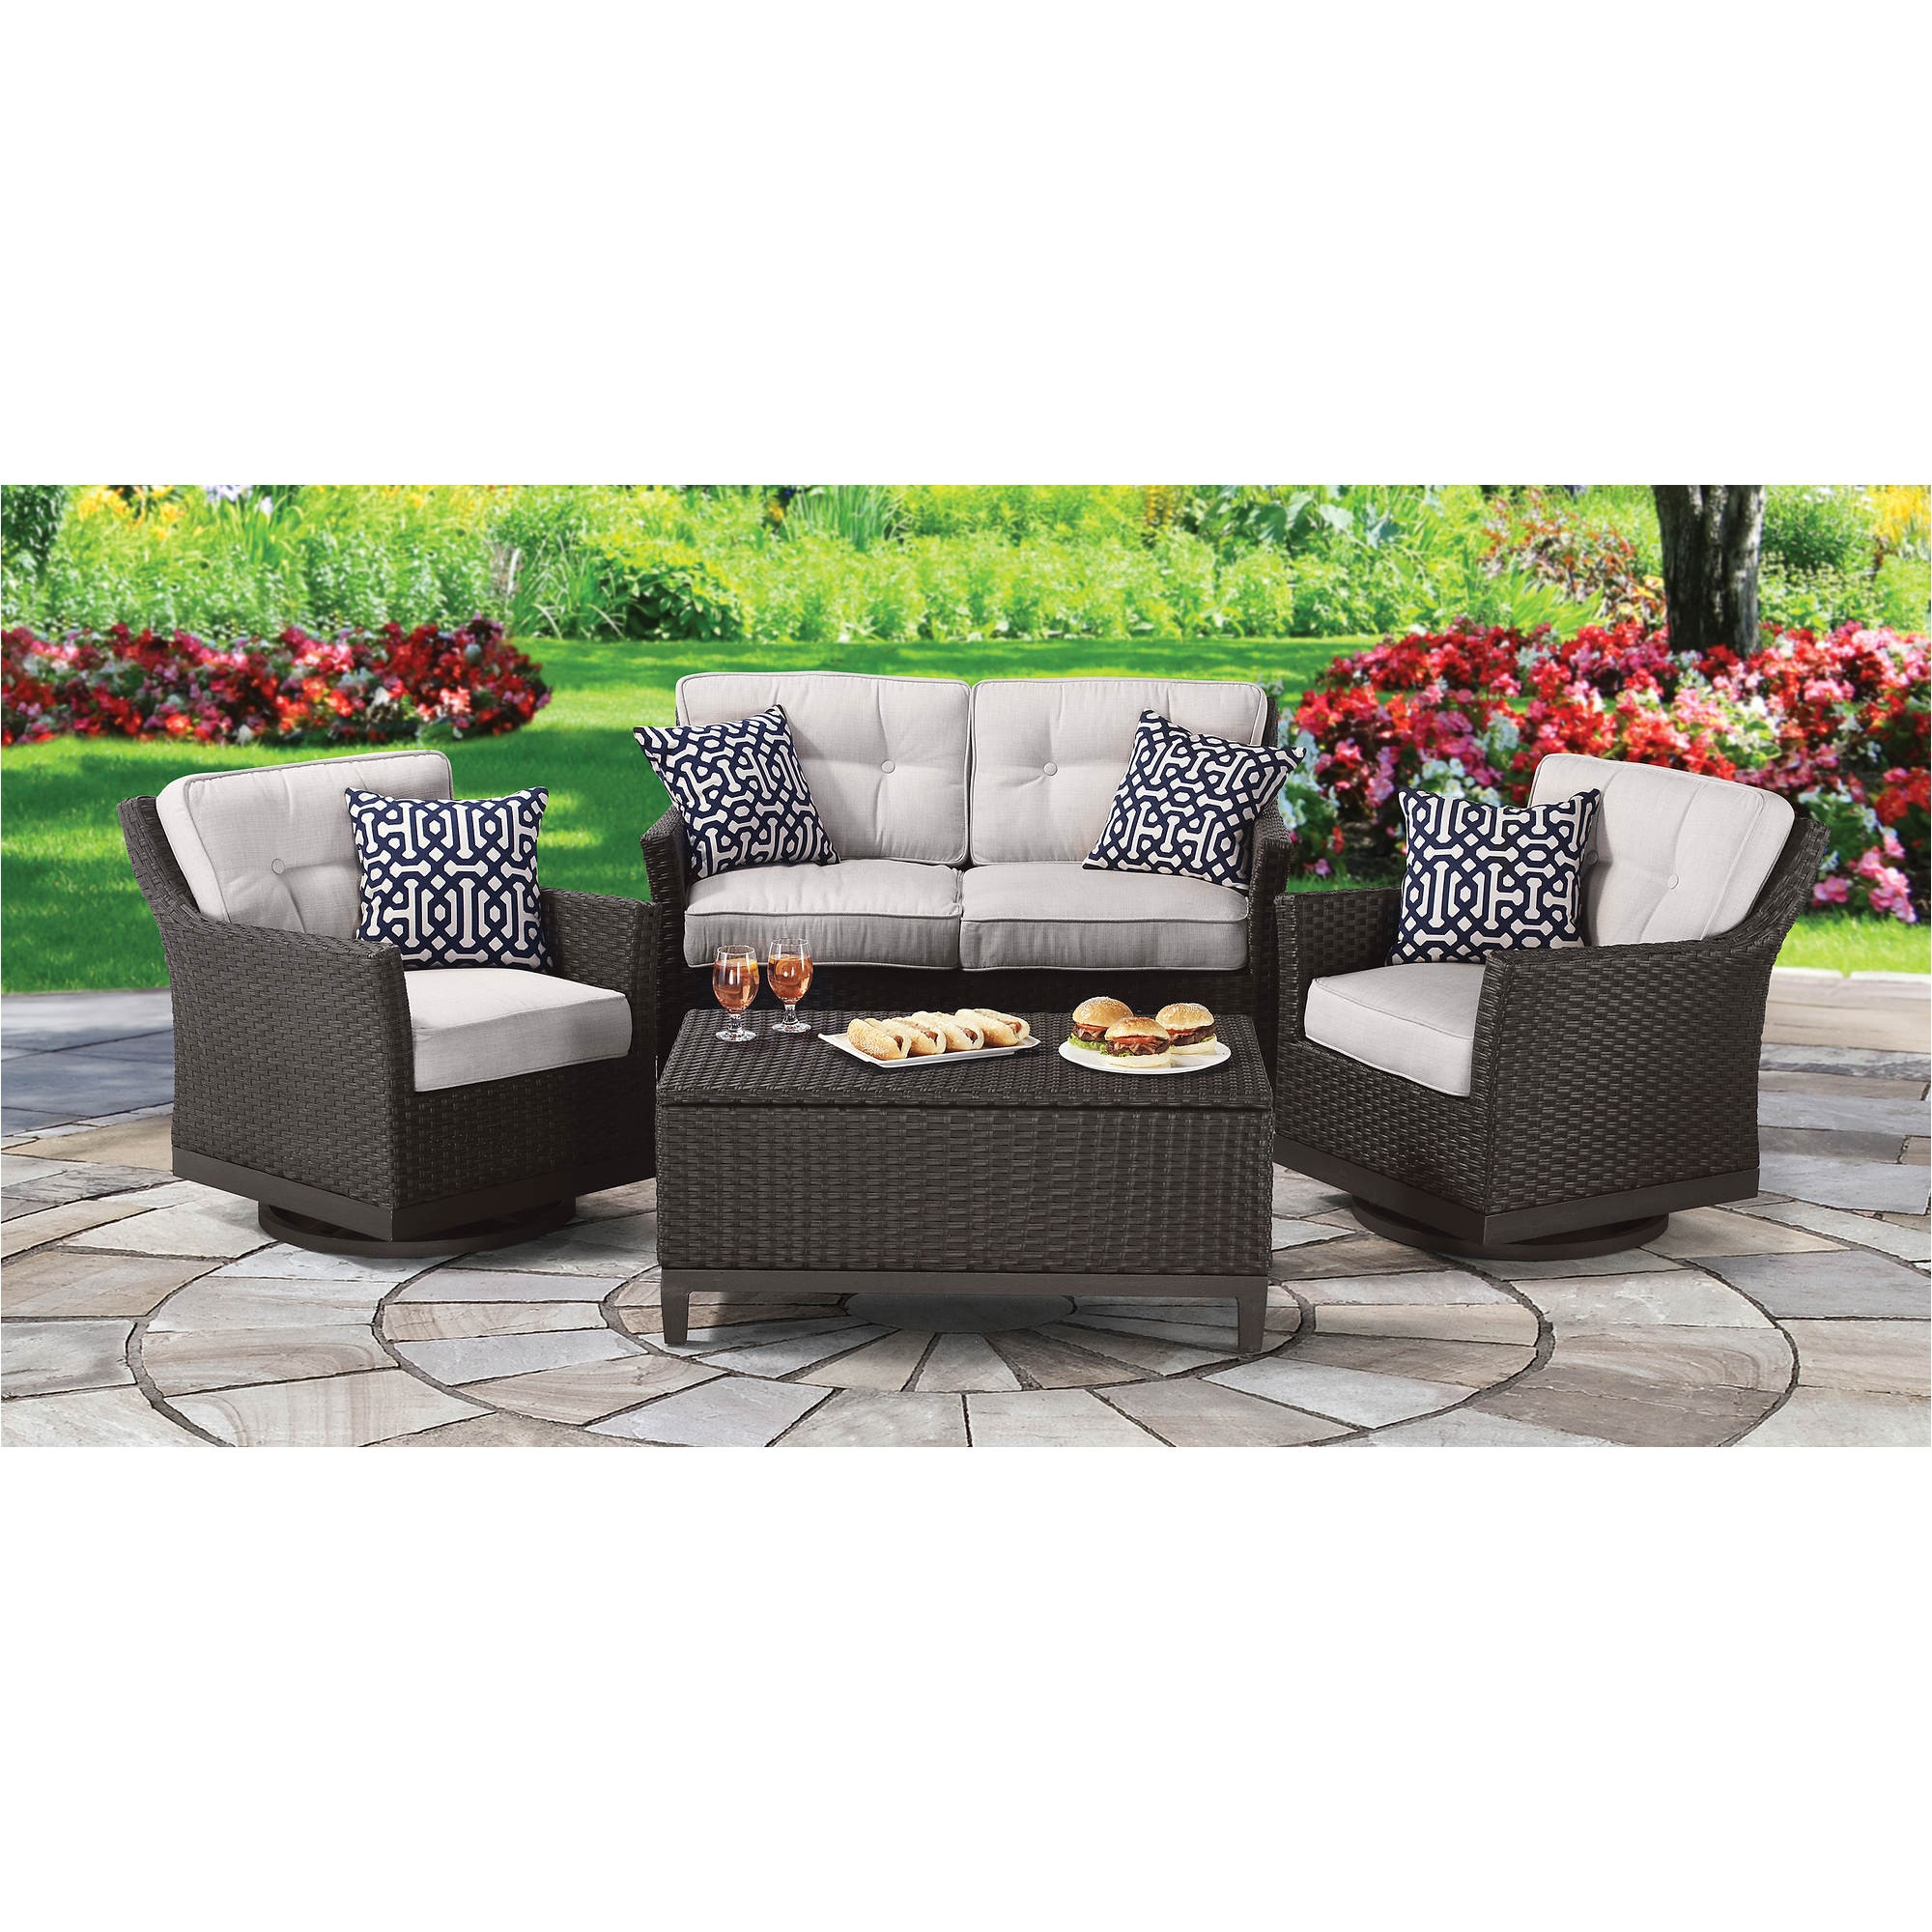 Berkley Jensen Patio Set Berkley Jensen Antigua 4 Pc Wicker Deep Seating Set Bj